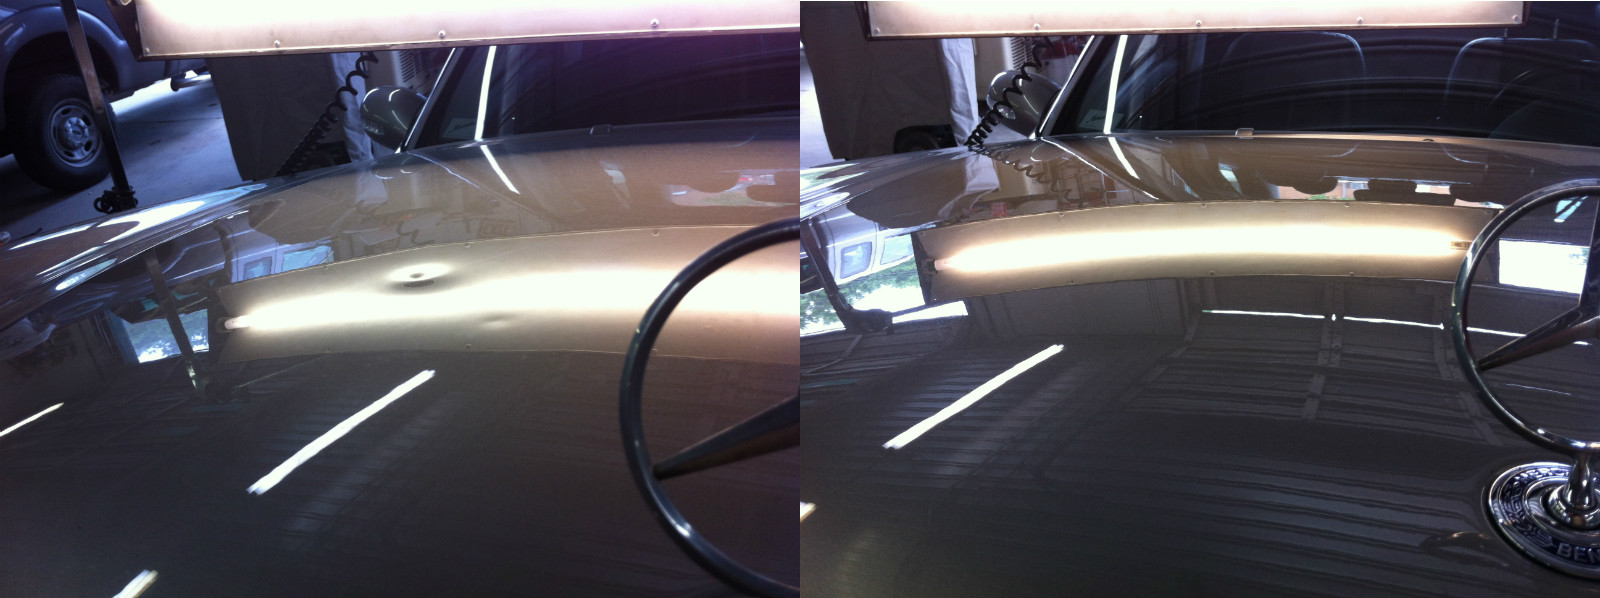 Paintless Dent Repair >> Mercedes E350 Aluminum Hood with Hail Damage Before and ...